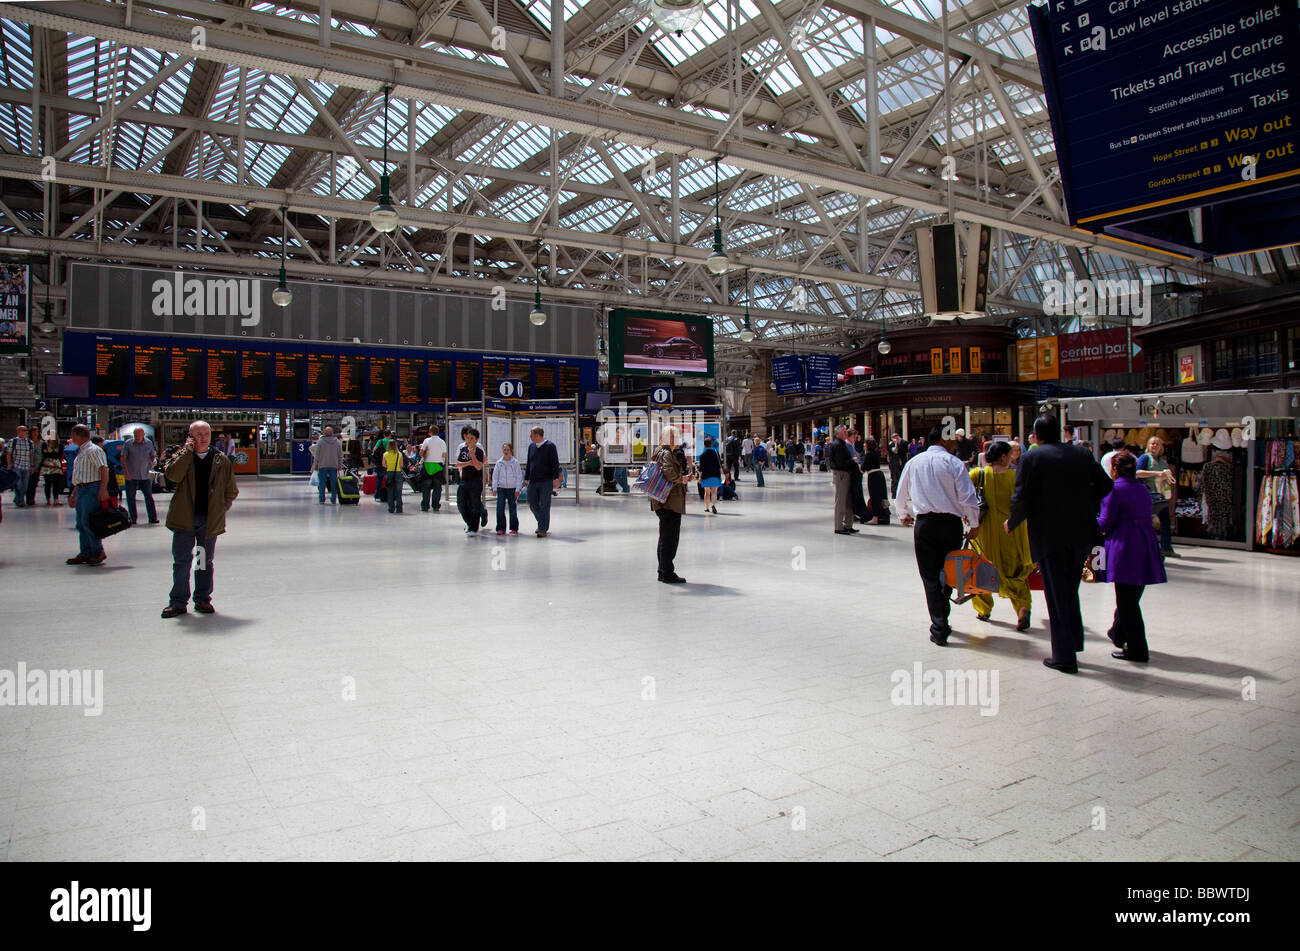 Travellers in the concourse of Glasgow Central station, Scotland's busiest station, UK - Stock Image